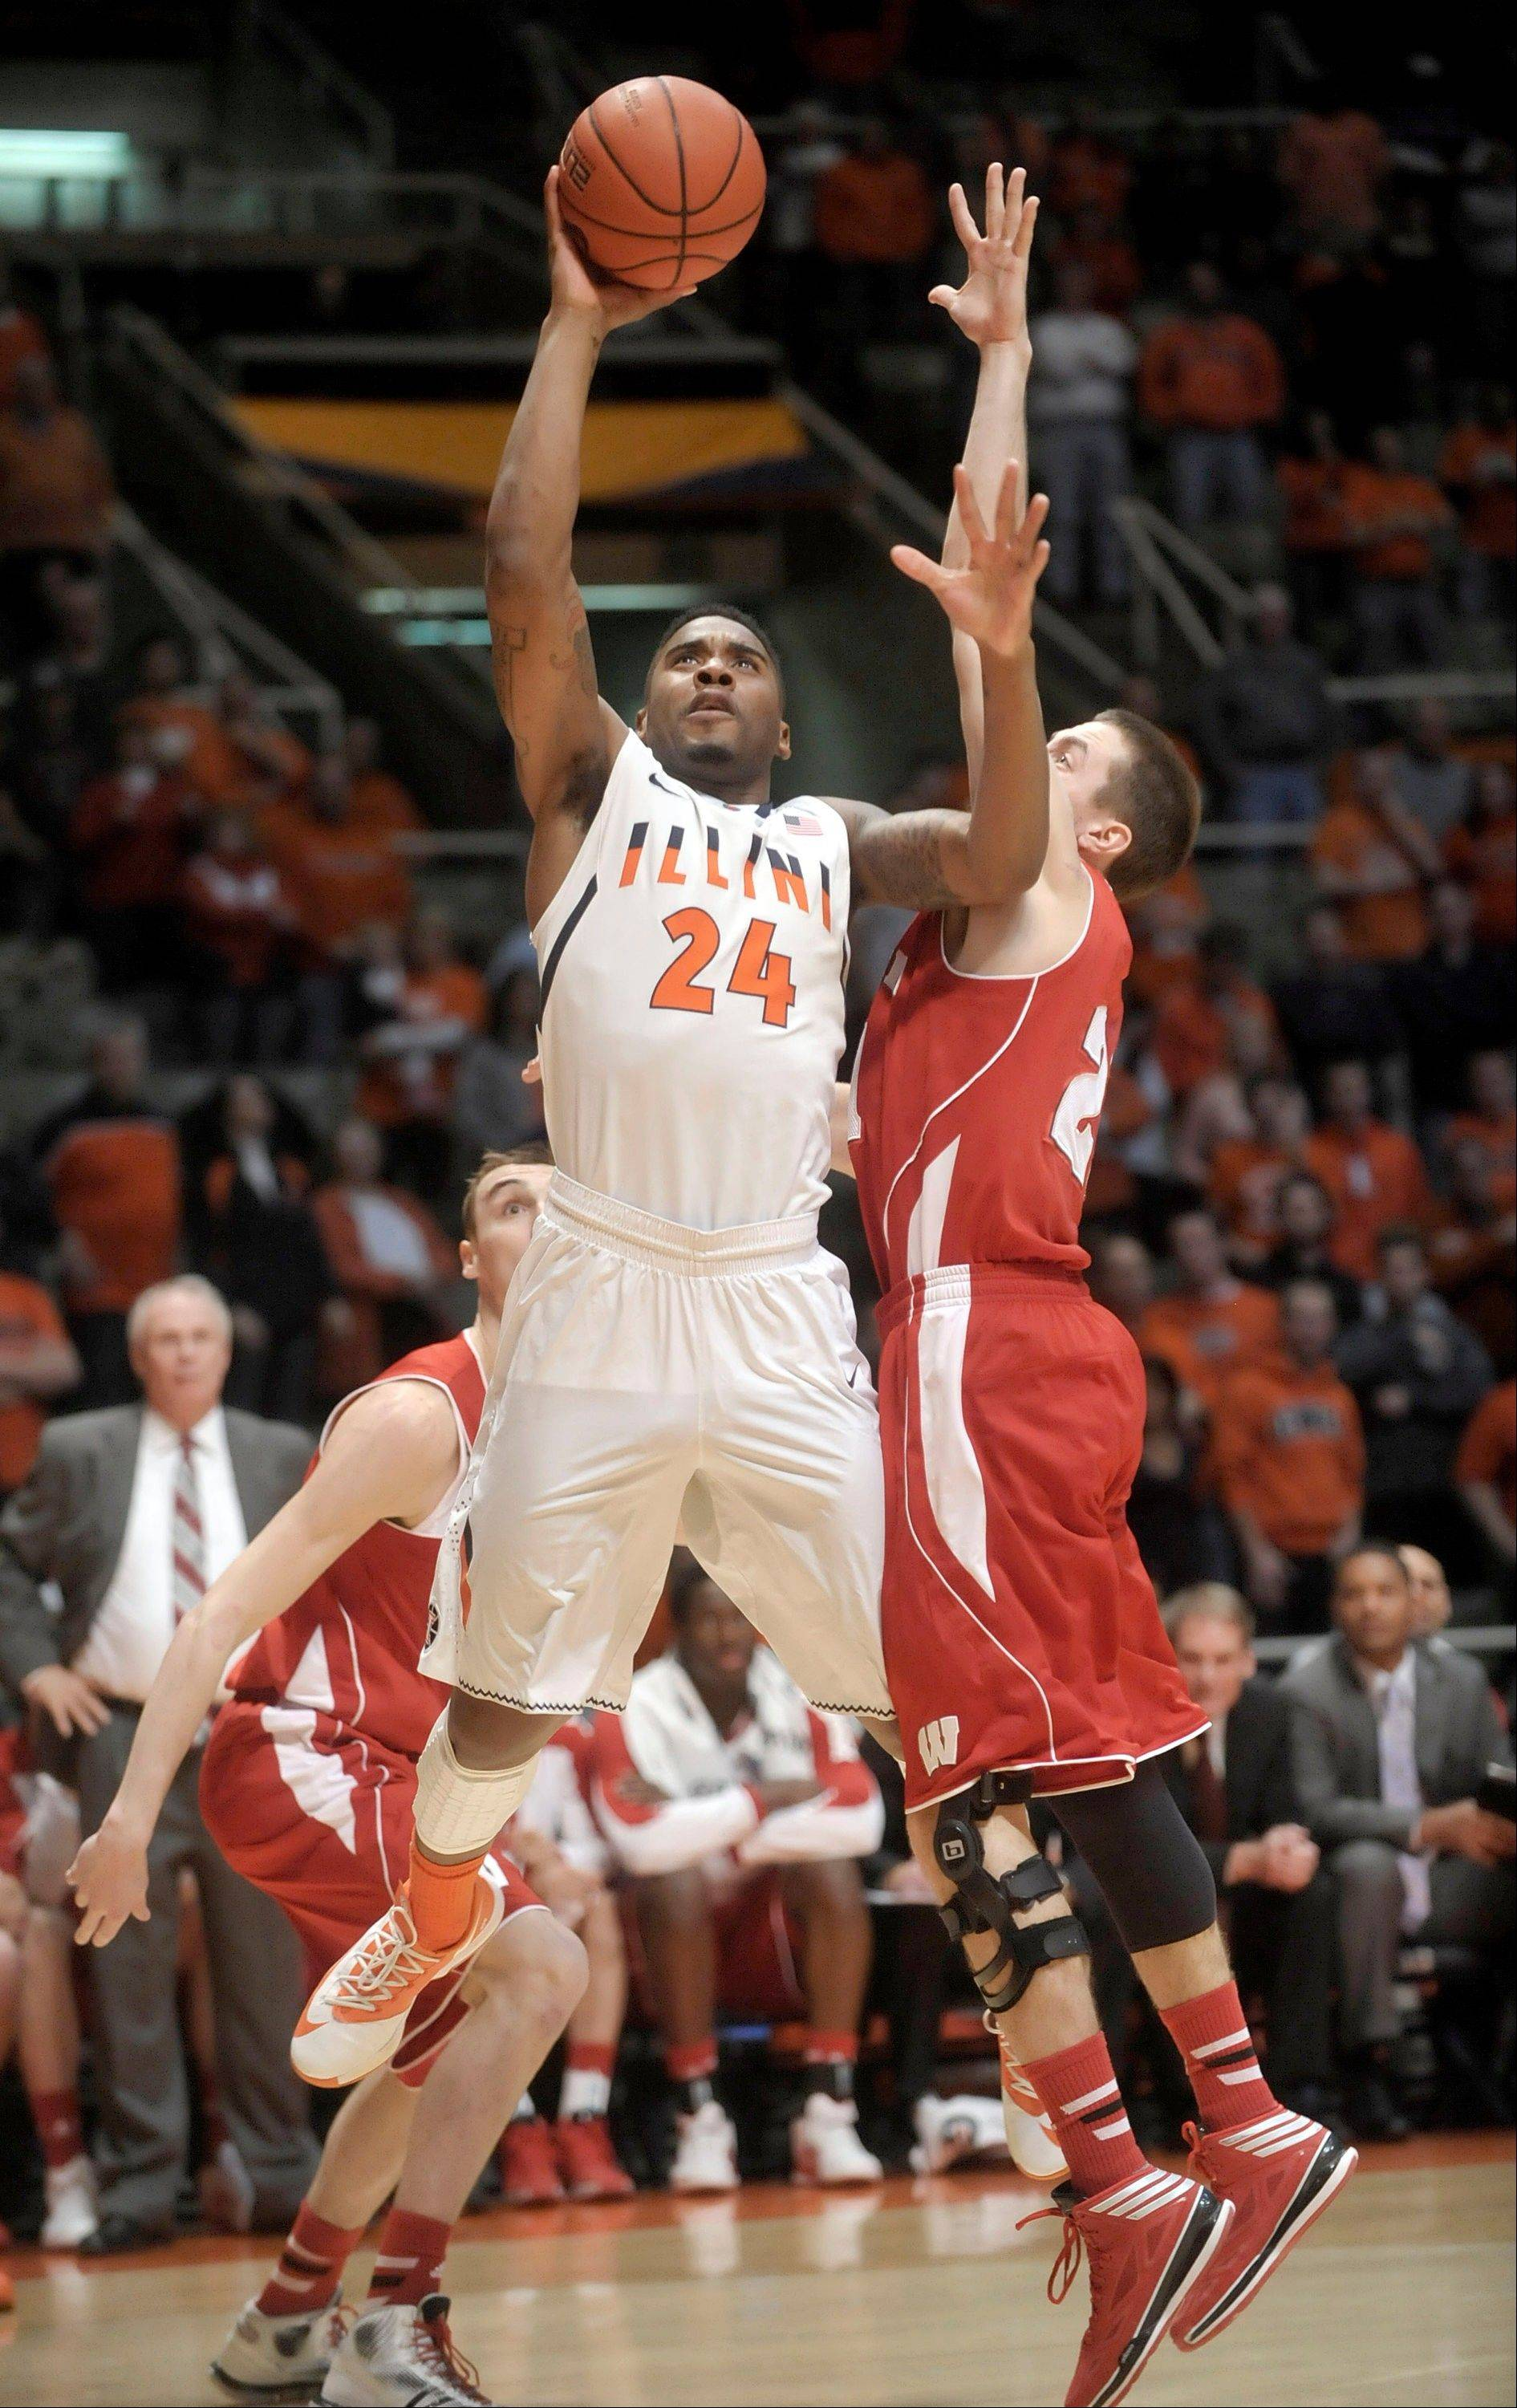 Illinois guard Rayvonte Rice (24) shoots over Wisconsin guard Josh Gasser (21) during Tuesday night's game in Champaign. The Badgers beat the Illini 75-63.